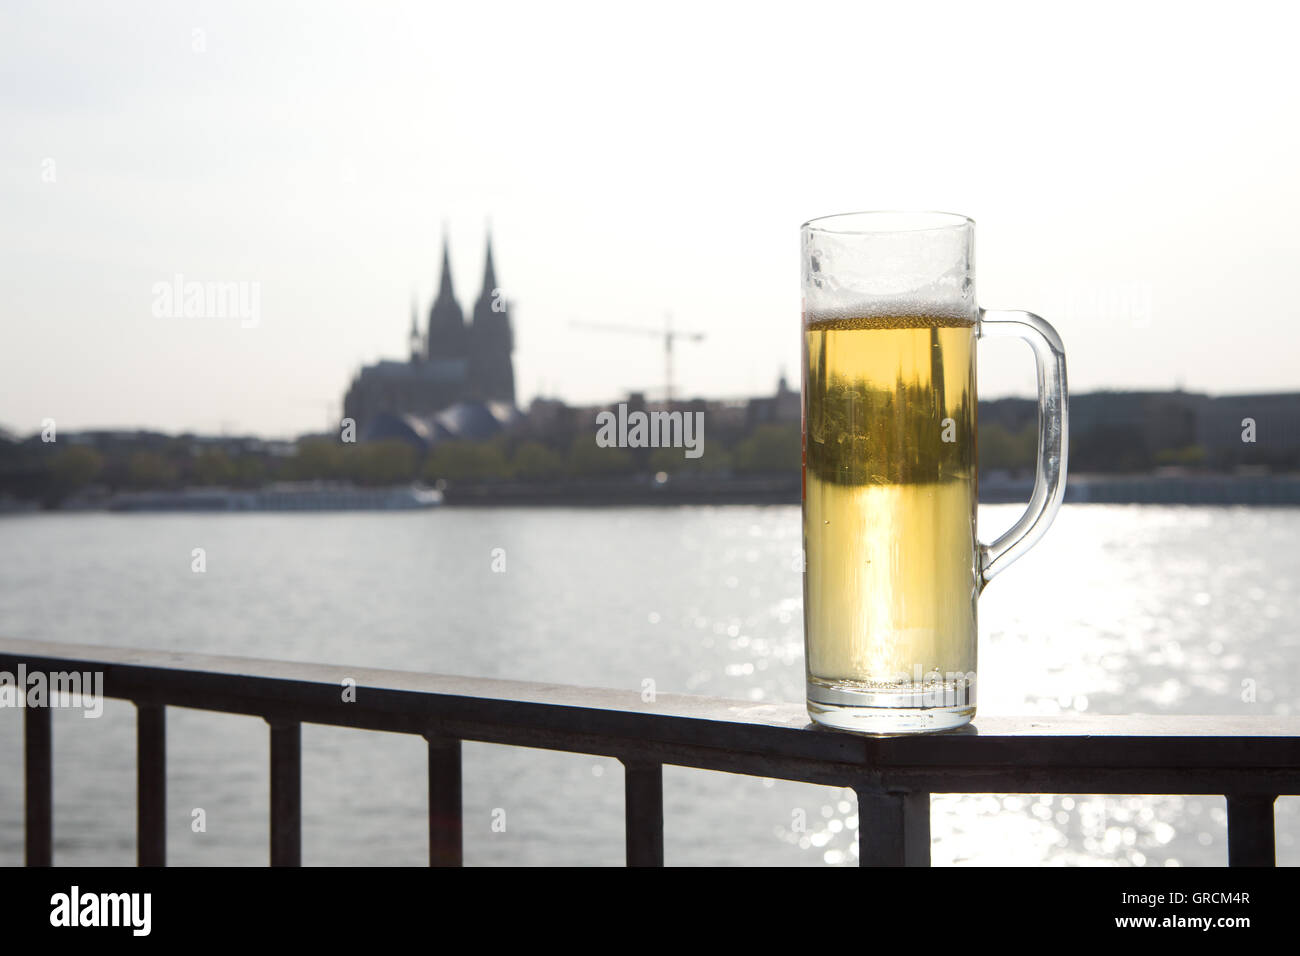 Computing Reini Cal River Bank With Kölsch And A View Of Cologne Cathedral - Stock Image